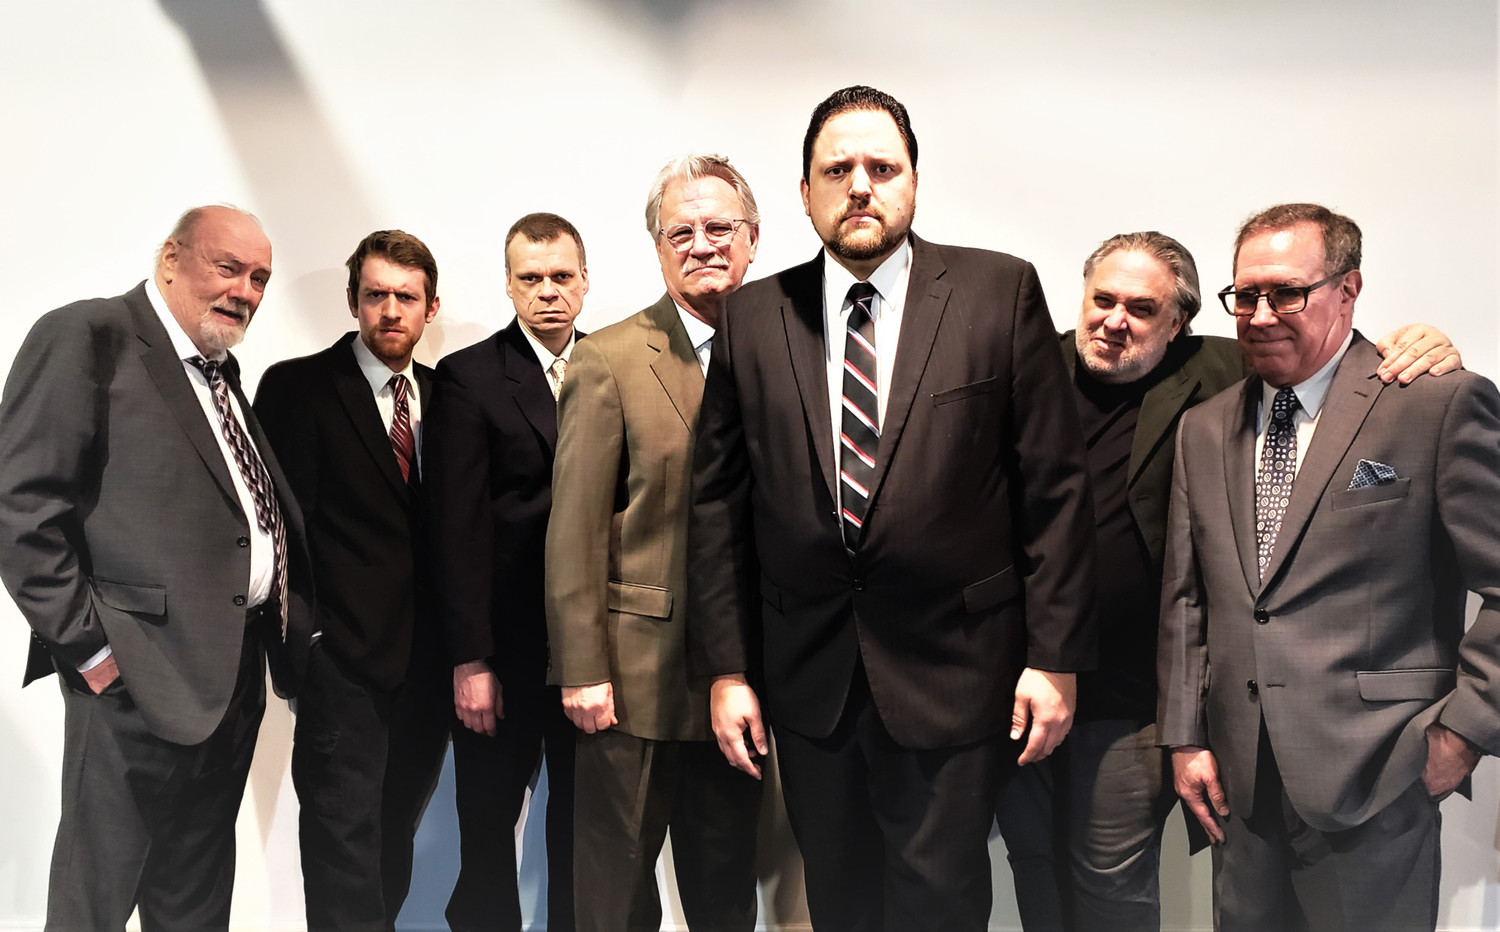 BWW Review: GLENGARRY GLEN ROSS at Monster Box Theatre Teaches You To Always Be Closing